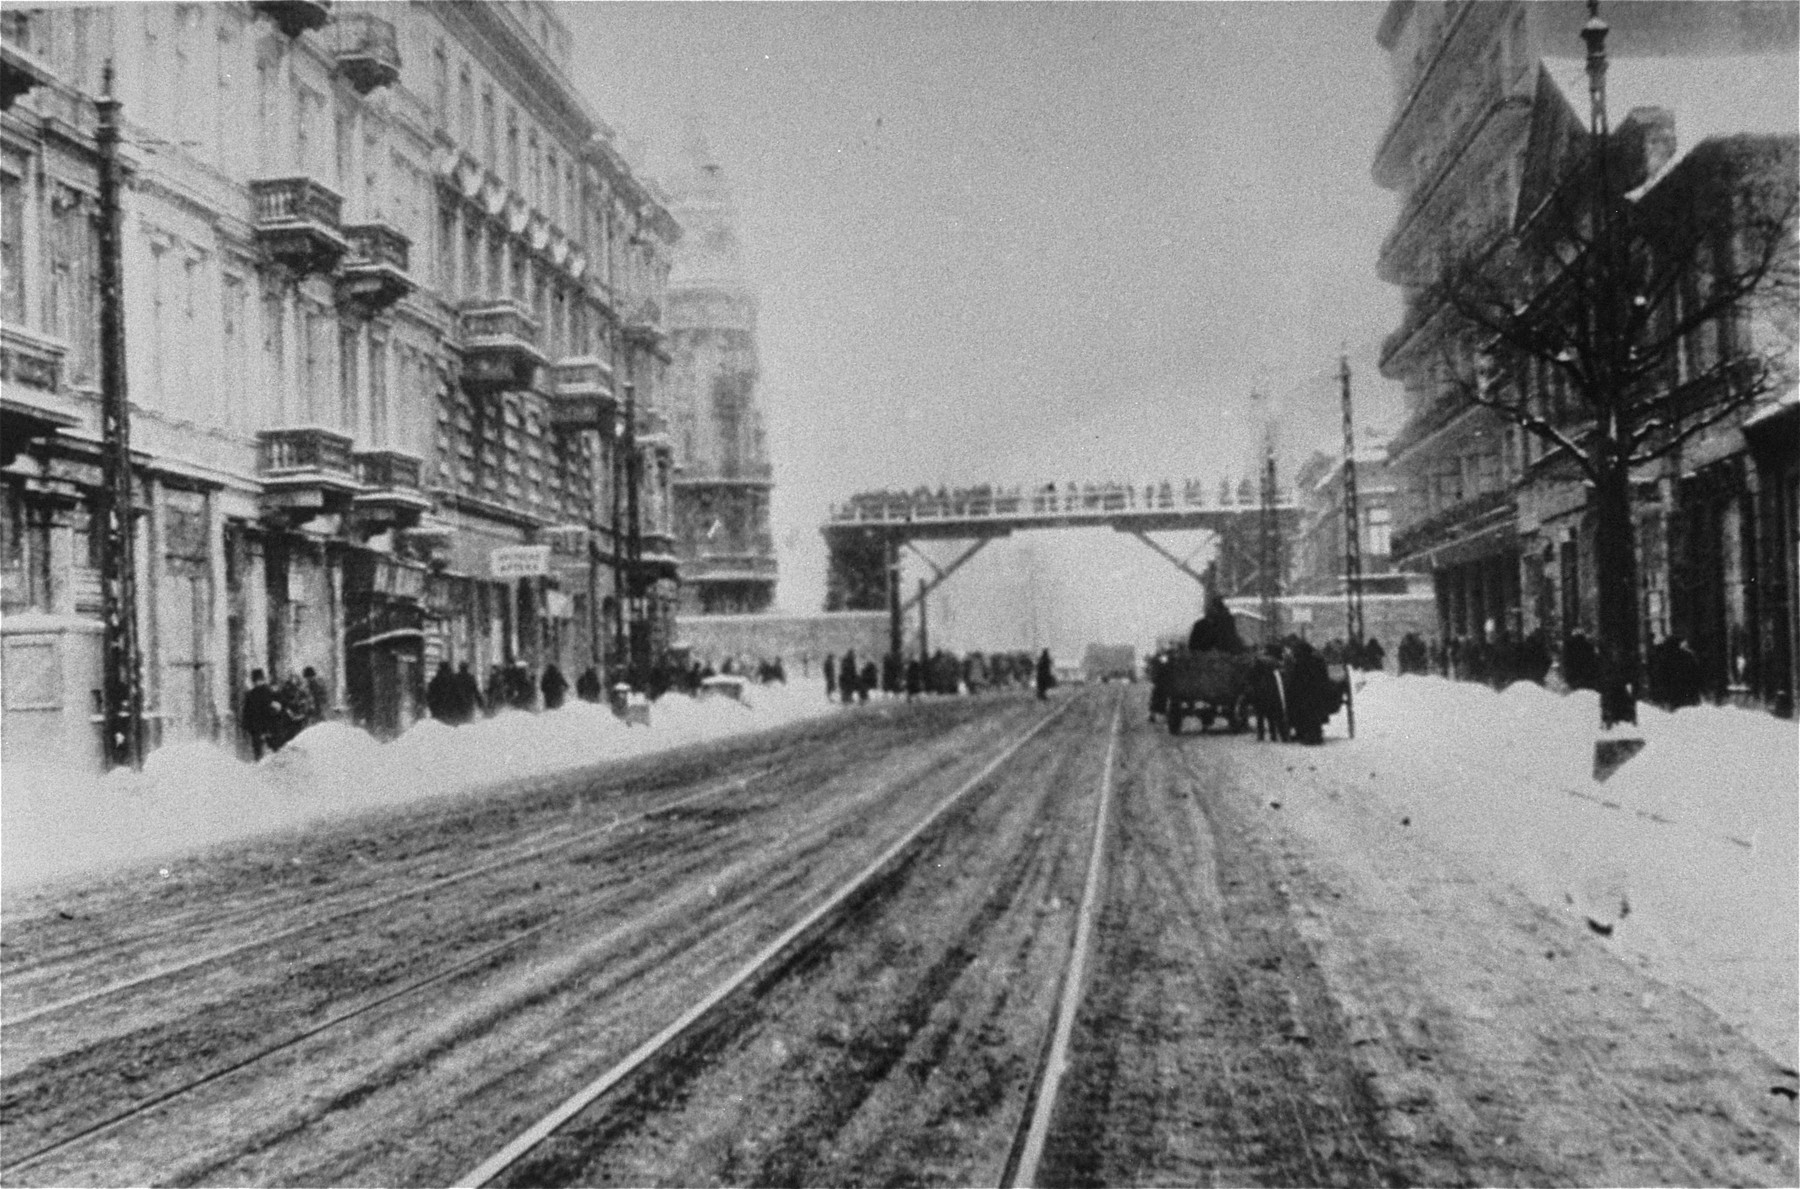 View of a street that divided the Warsaw ghetto.  A bridge that connected the two parts of the ghetto is visible.